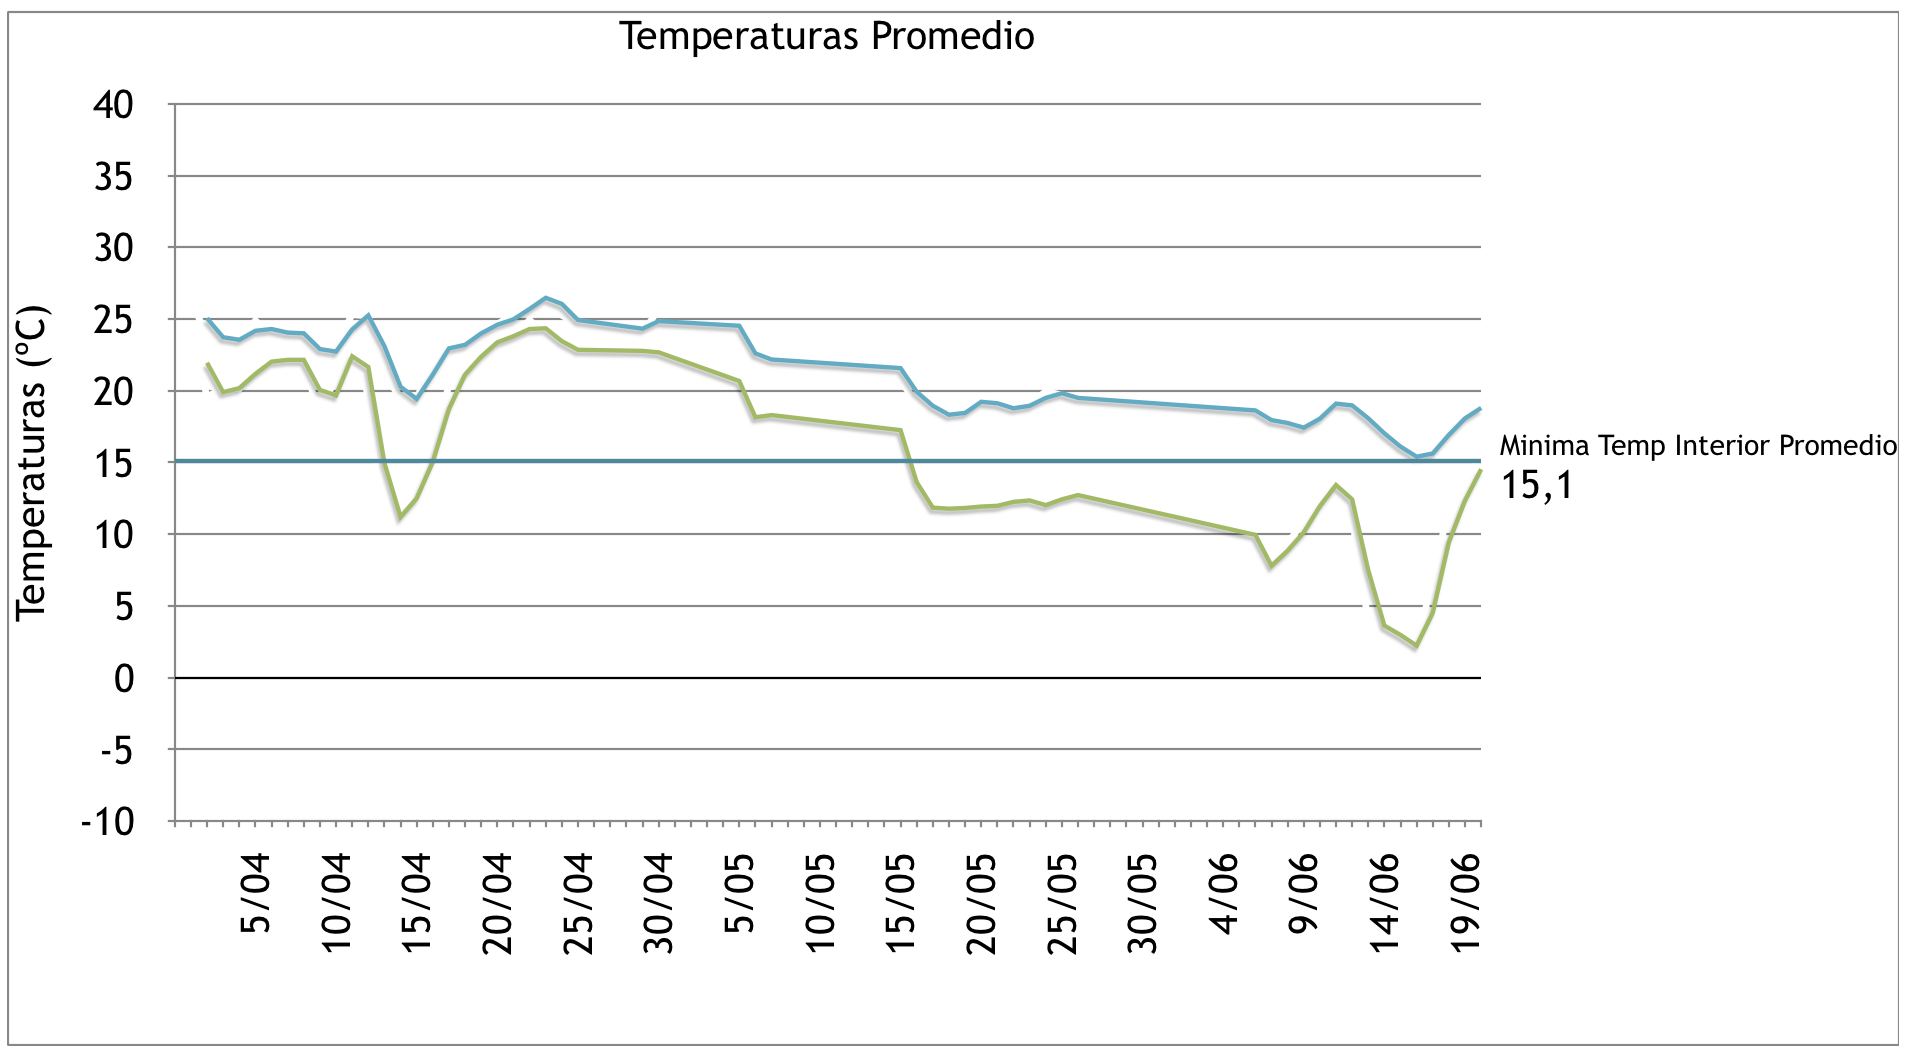 Temperaturas promedio